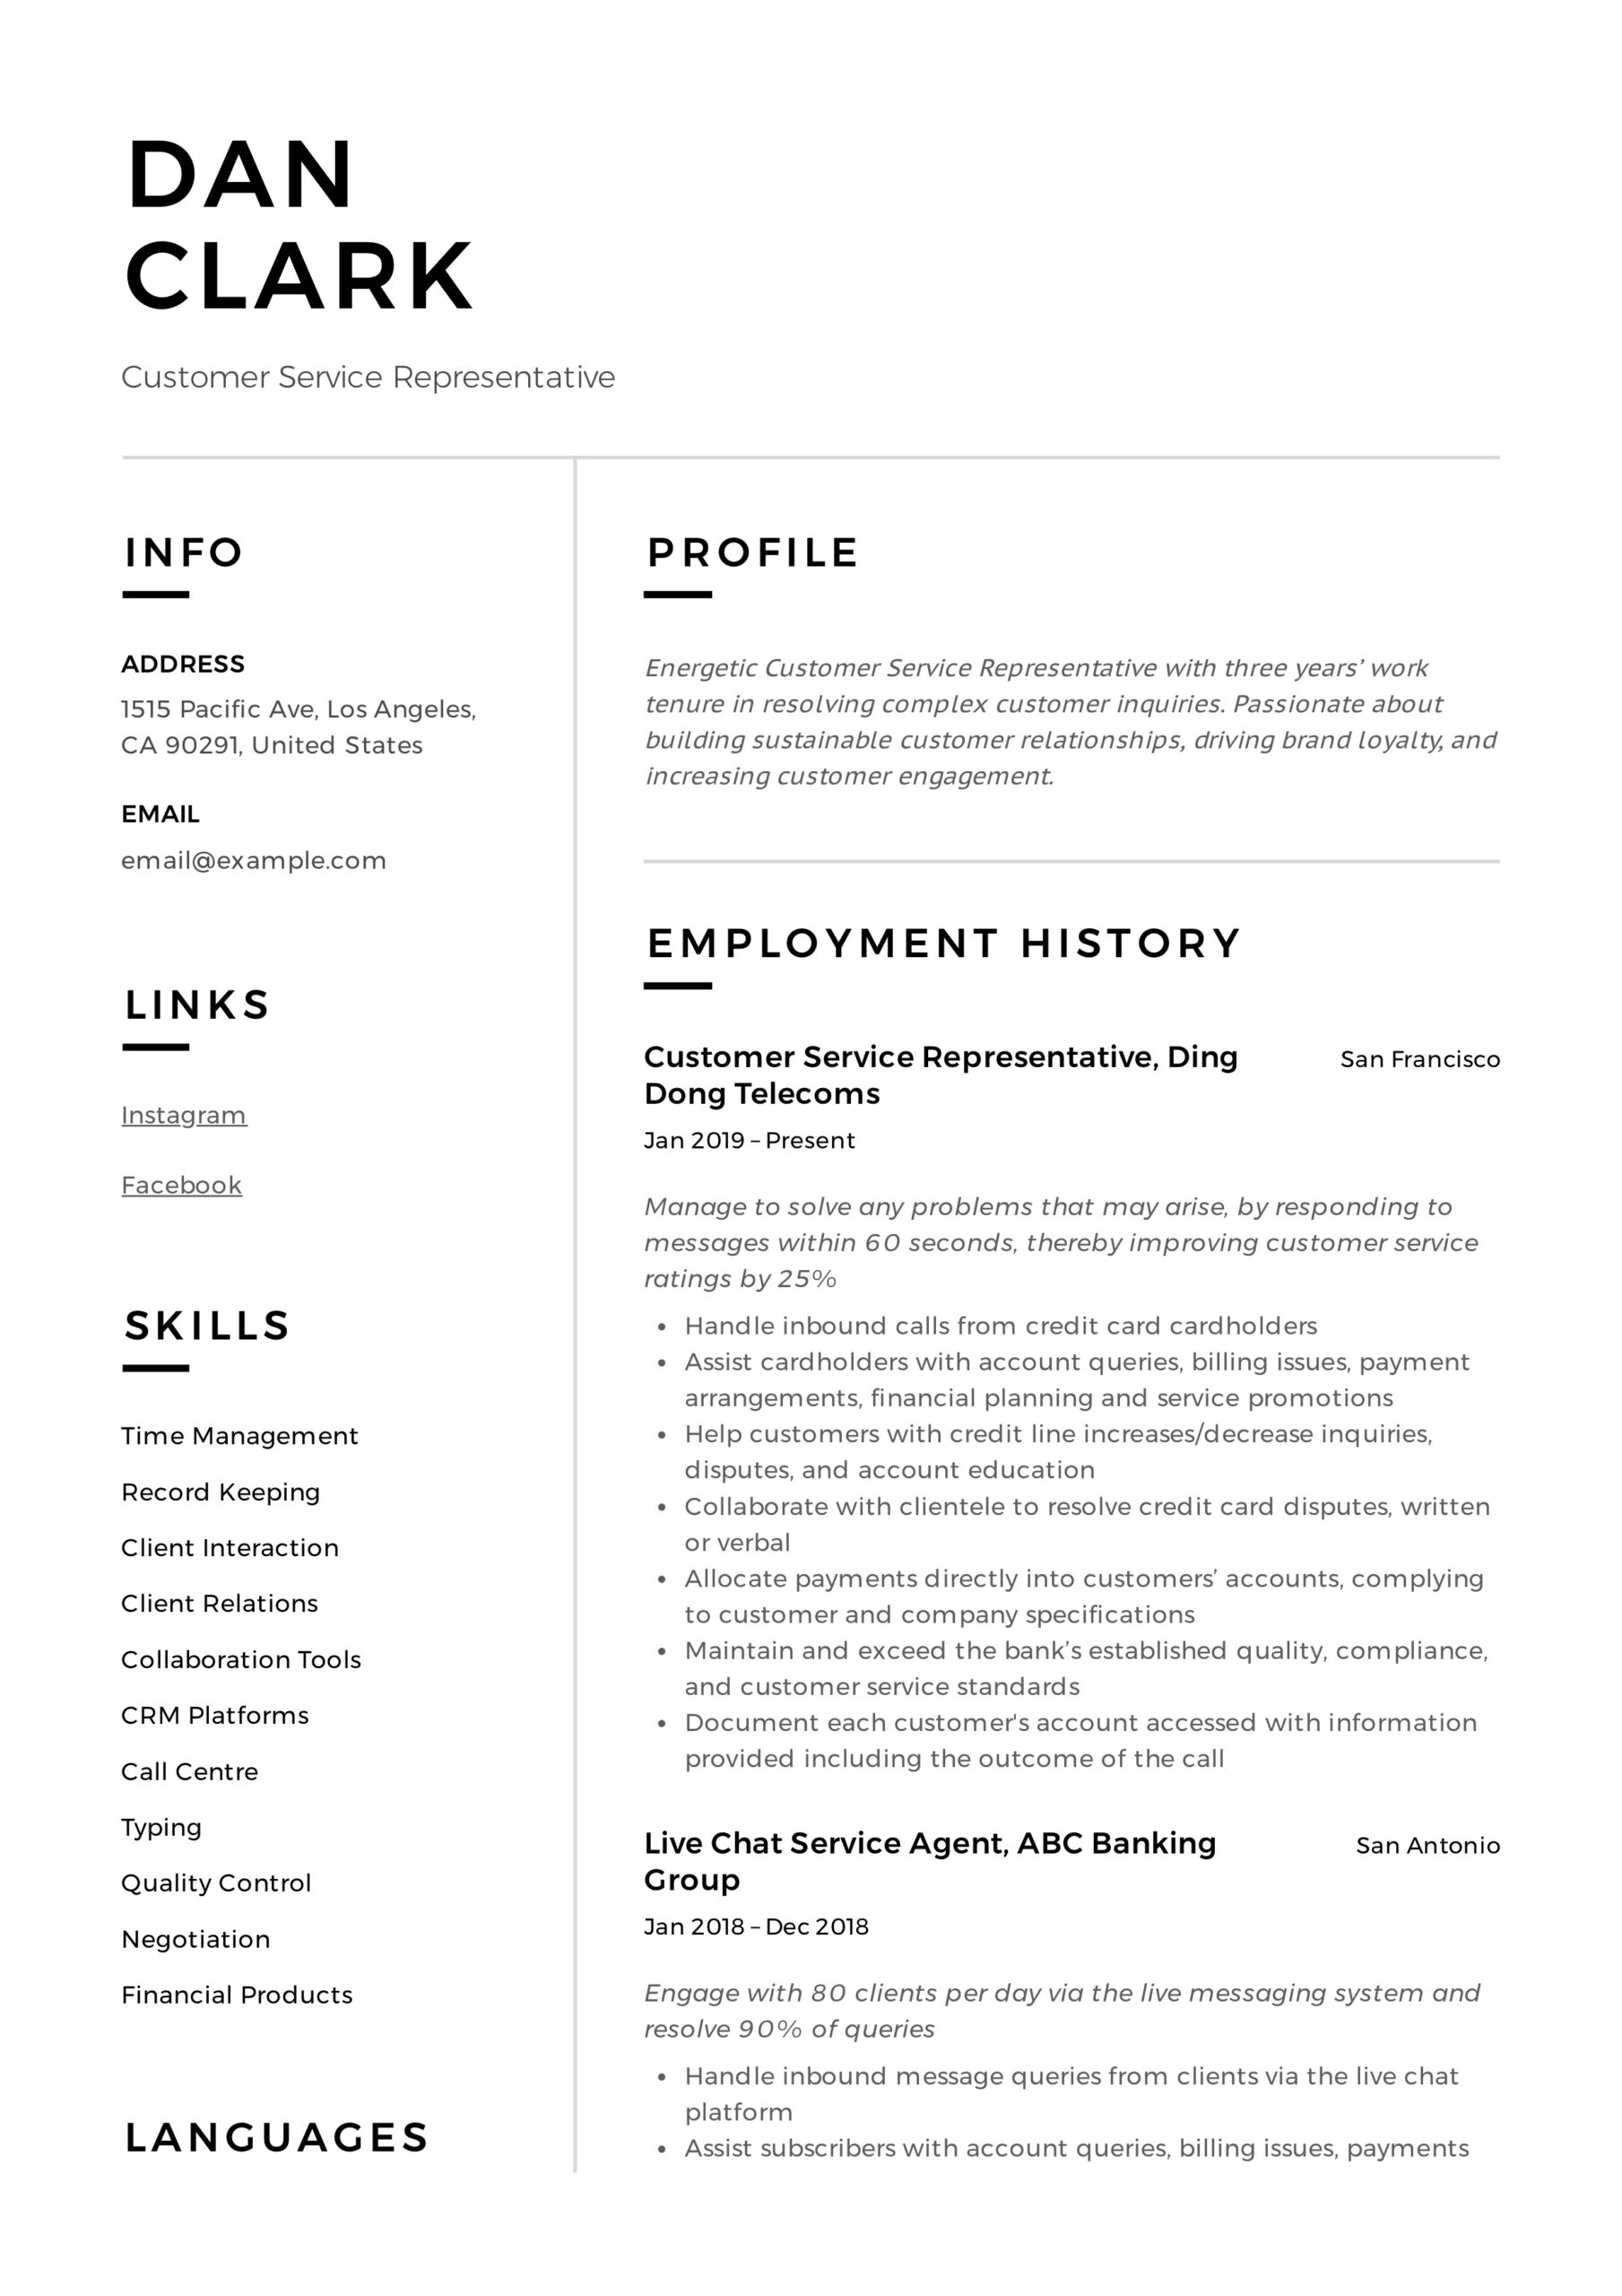 to customer service representative resume pdf samples specialist peace corps updated Resume Customer Service Specialist Resume